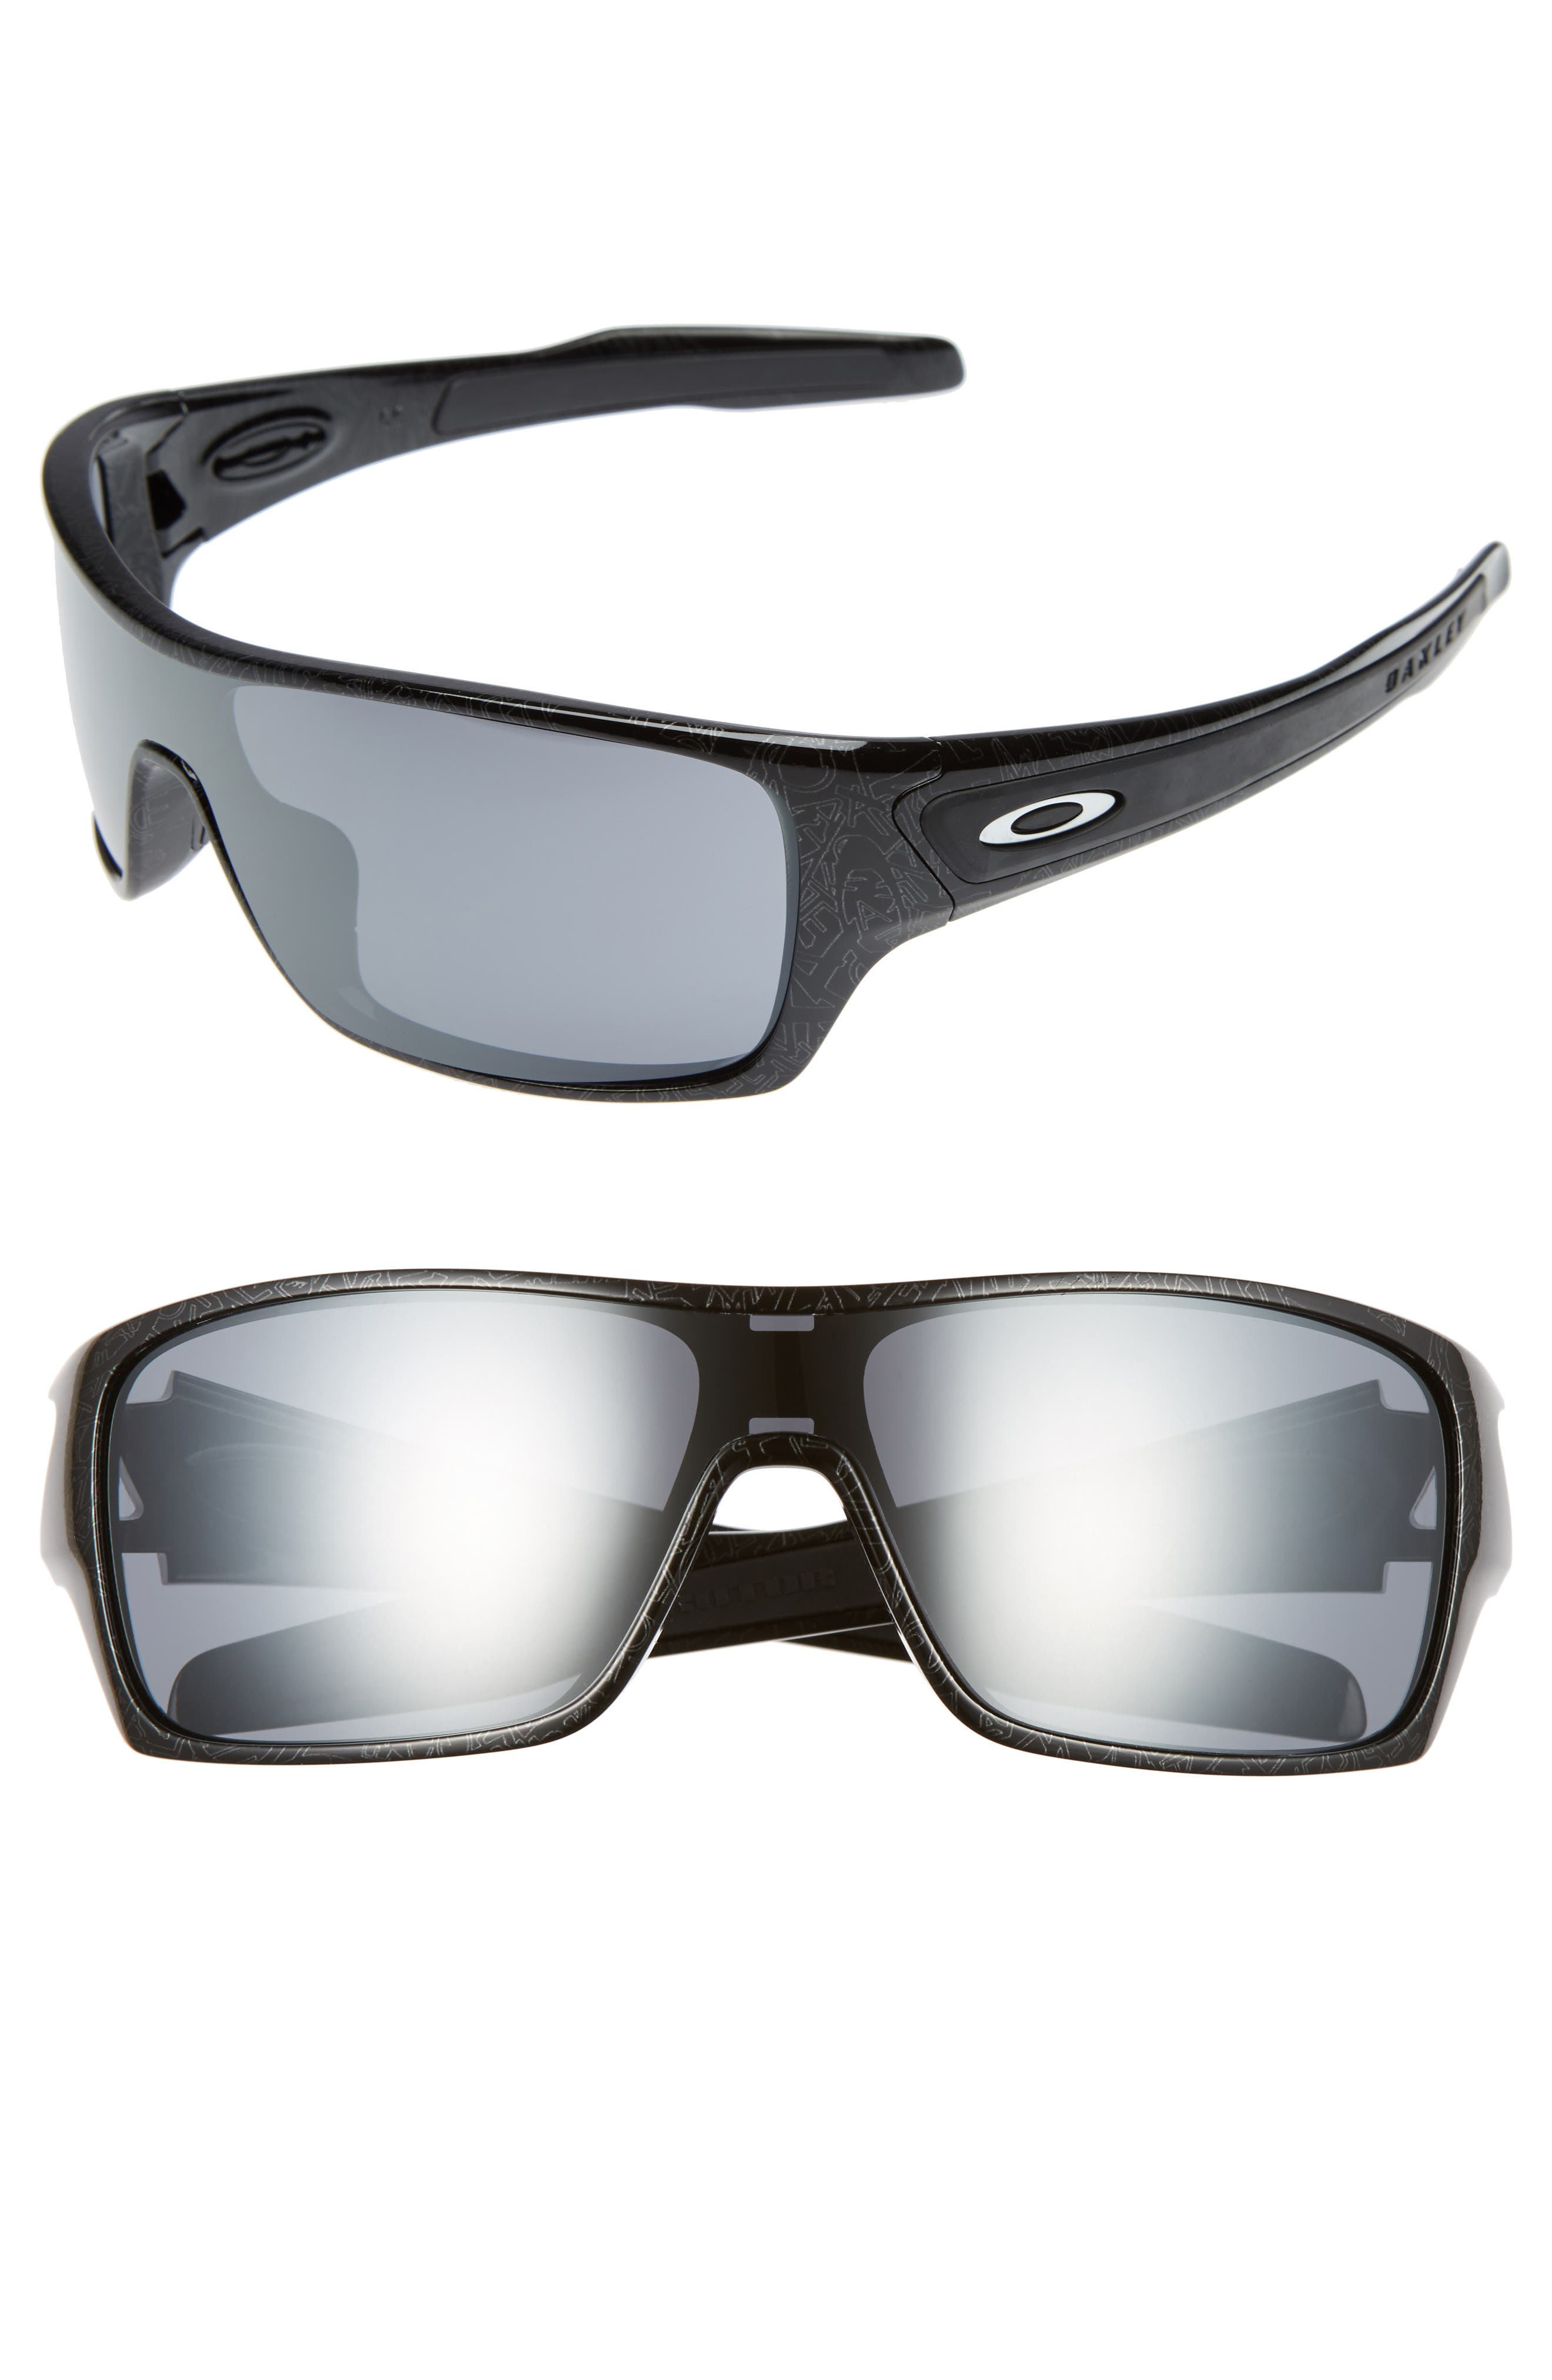 Main Image - Oakley Turbine Rotor 70mm Sunglasses